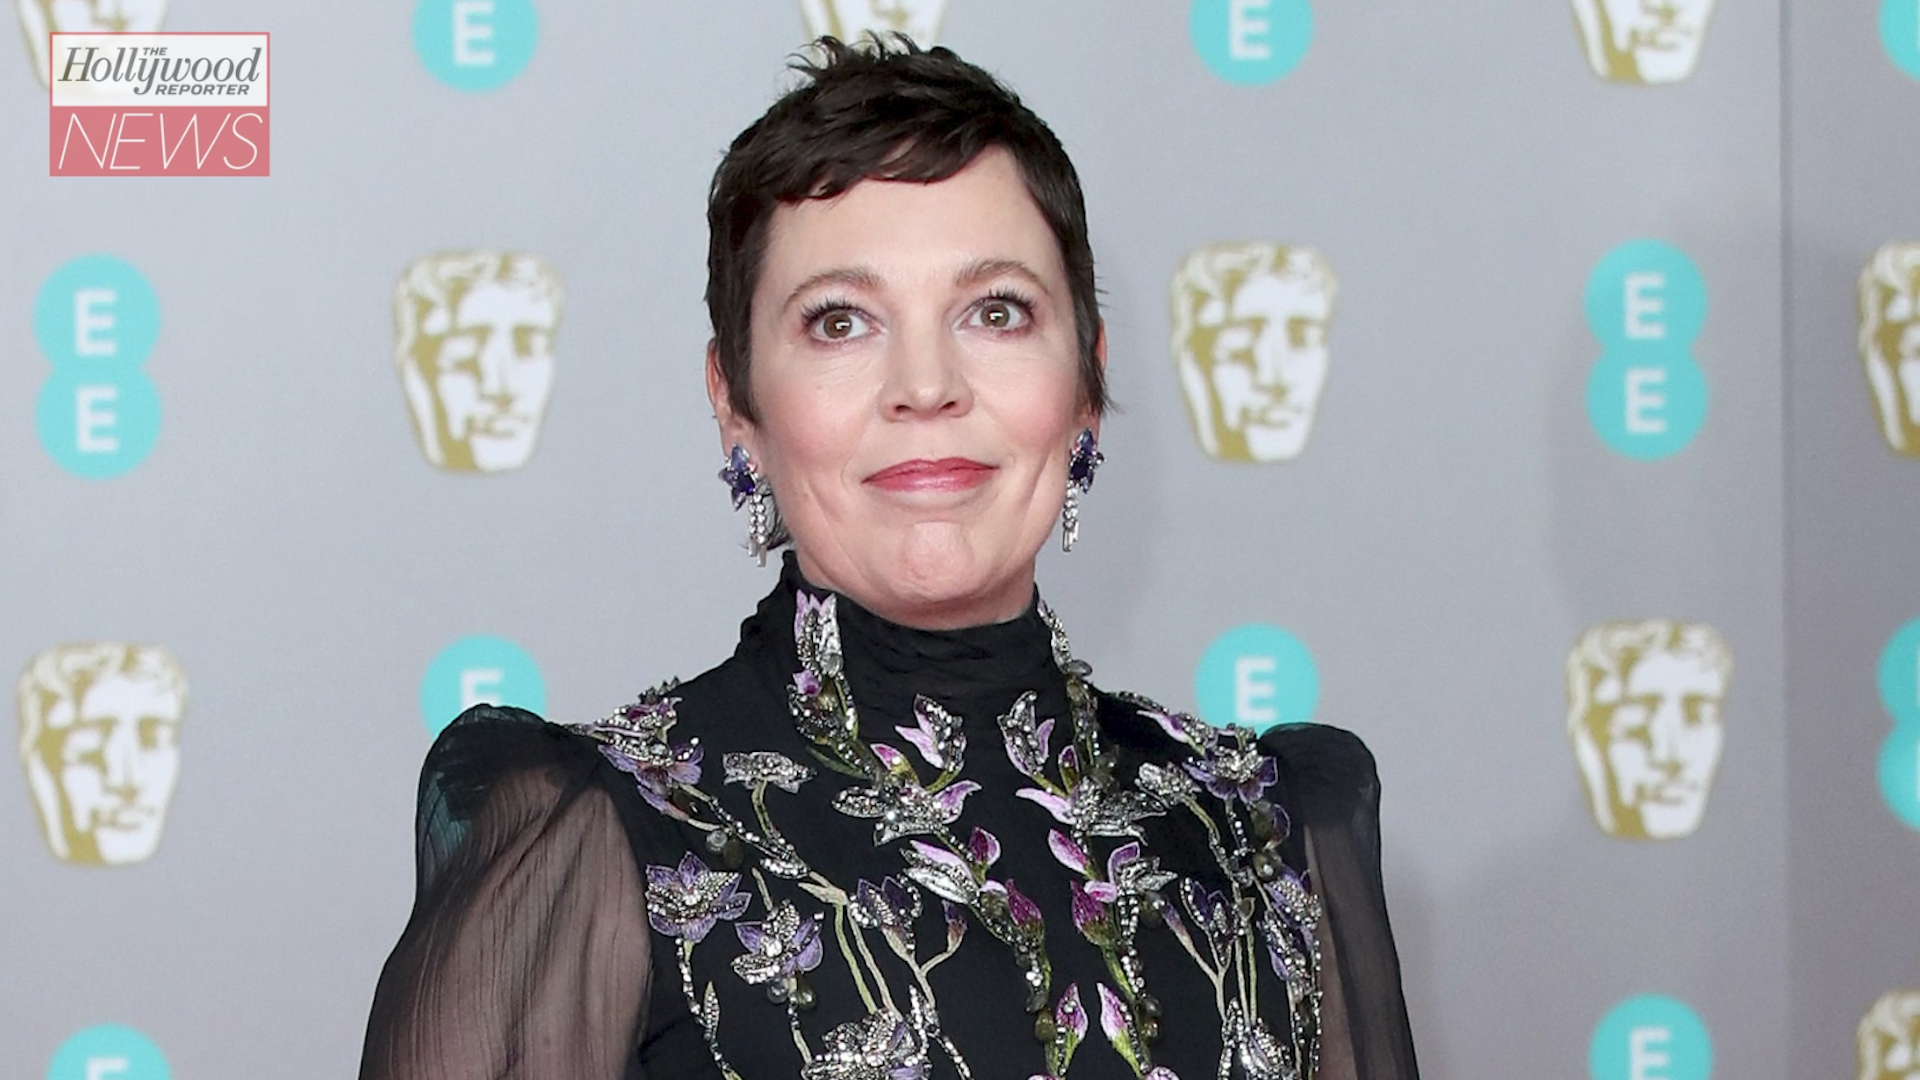 Olivia Colman in Talks to Star in Marvel's 'Secret Invasion' Alongside Samuel L. Jackson | THR News